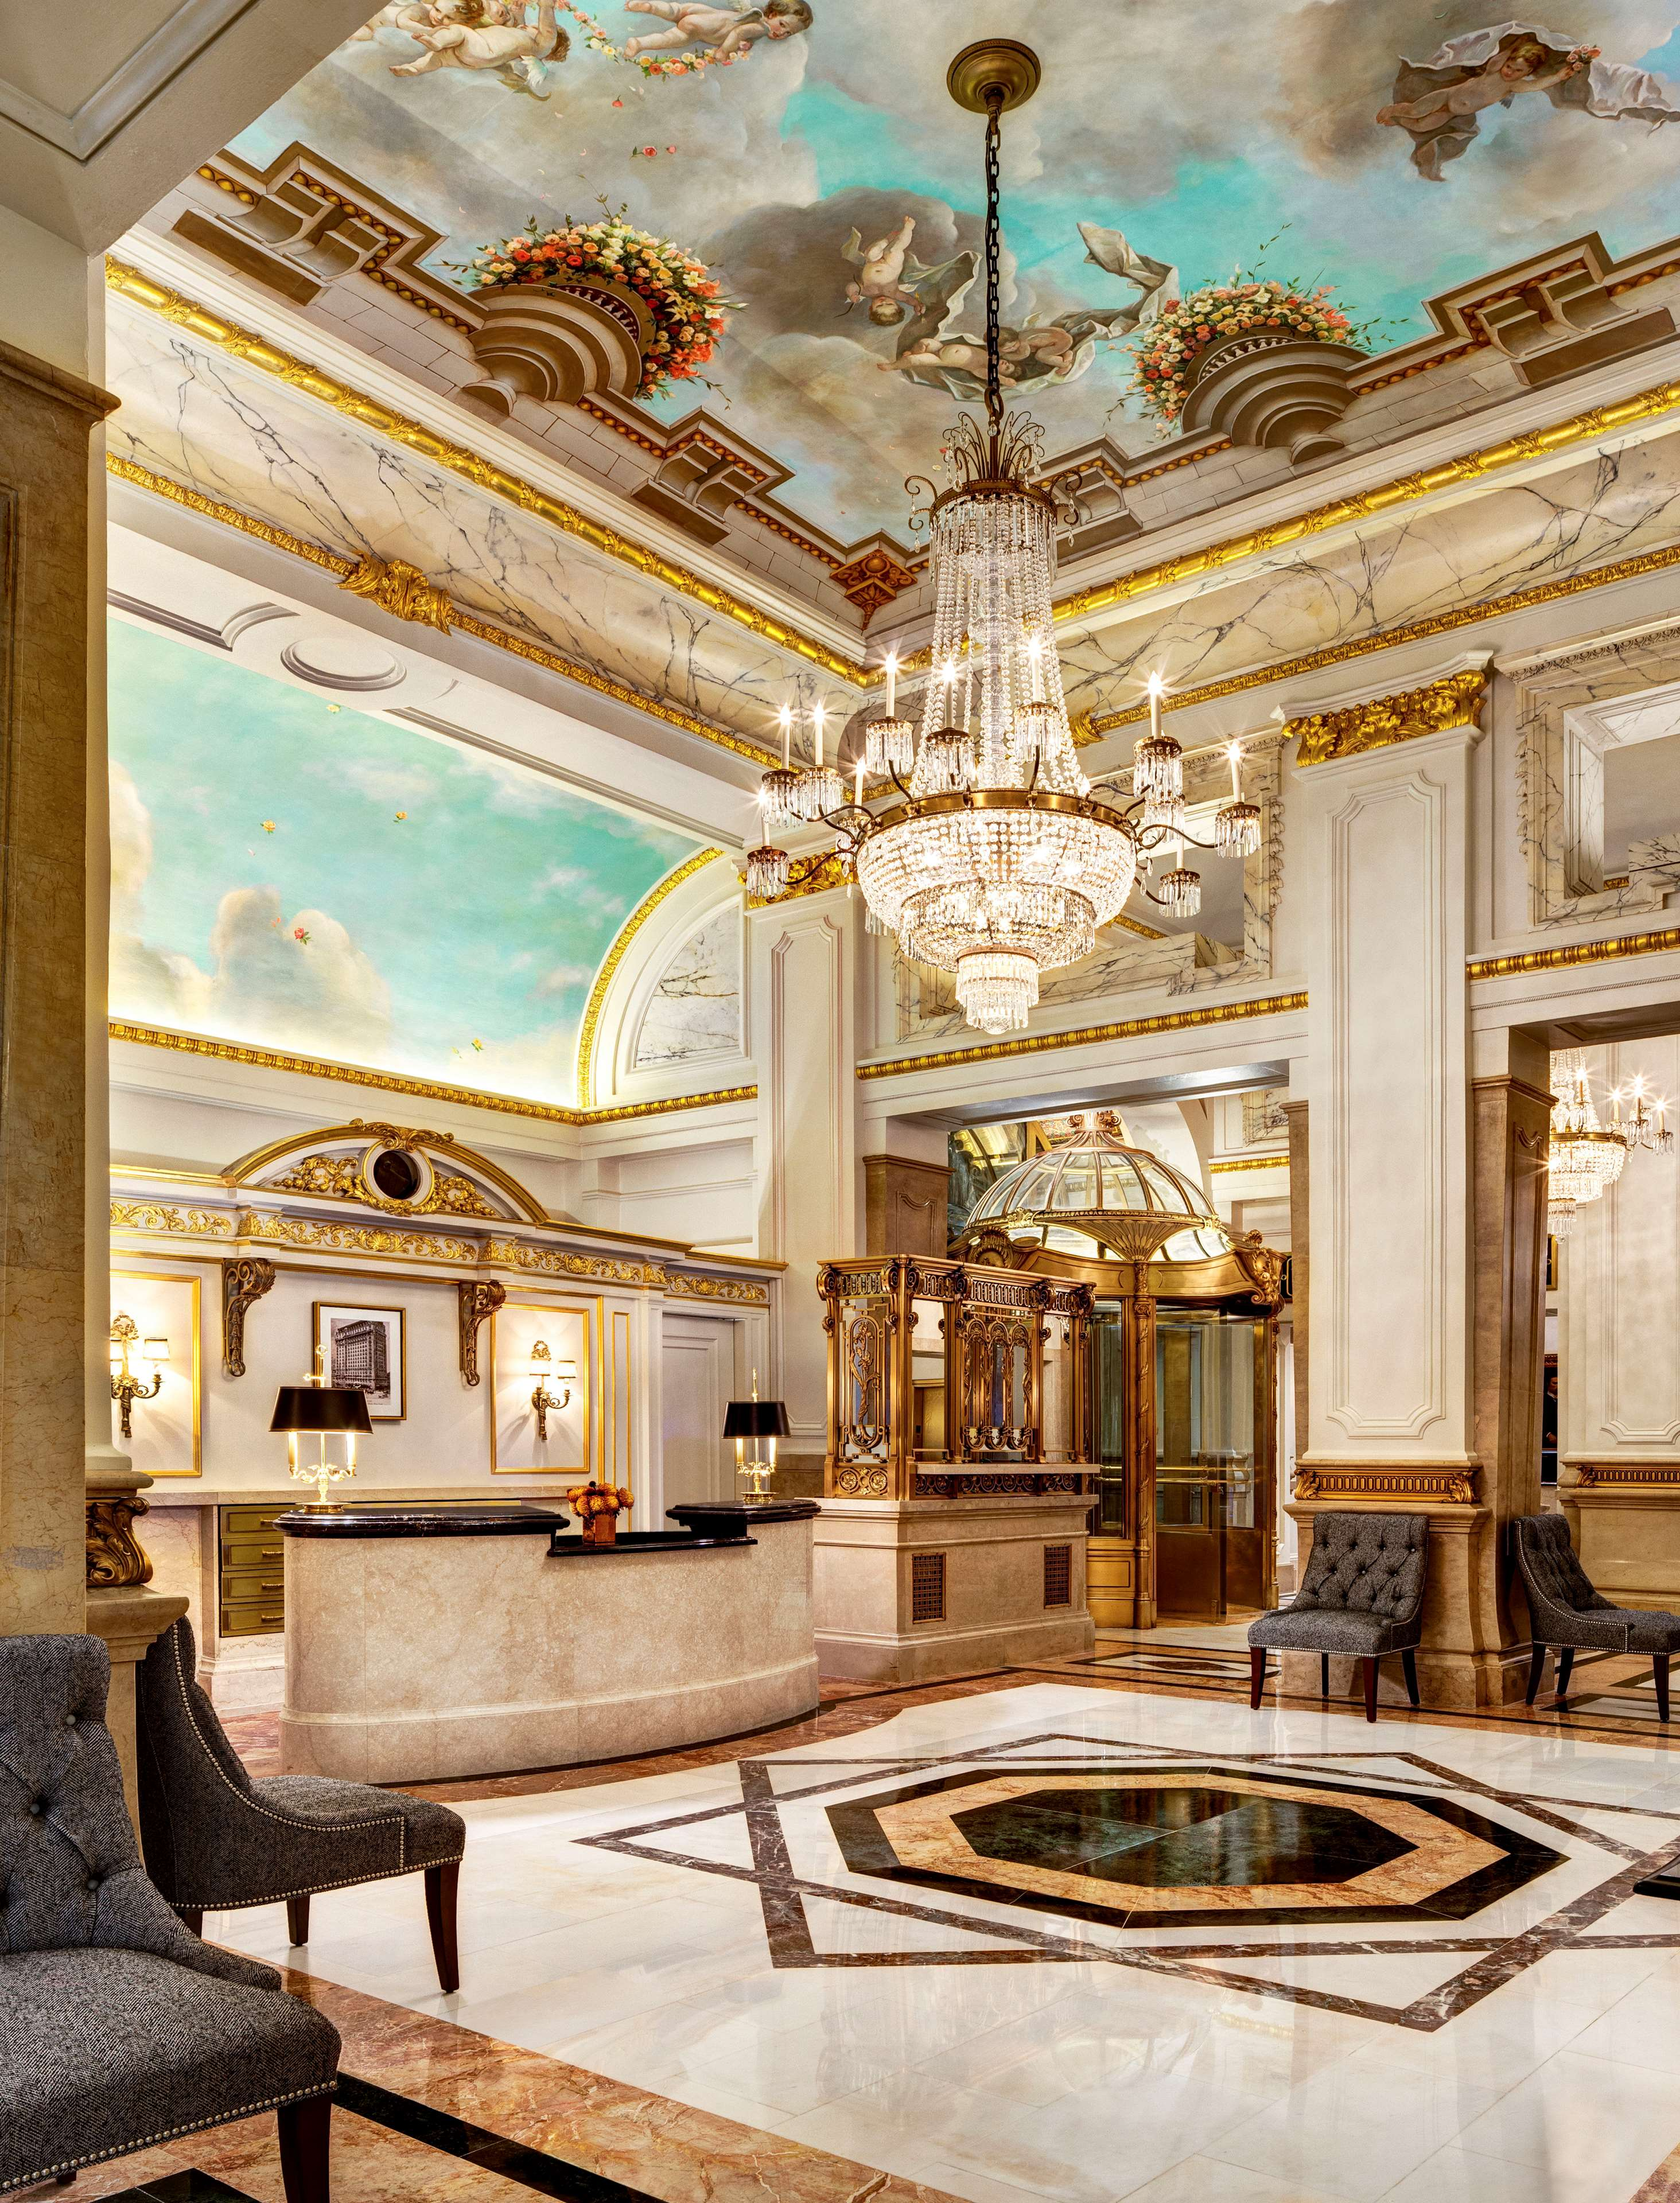 the st regis new york coupons near me in new york 8coupons. Black Bedroom Furniture Sets. Home Design Ideas